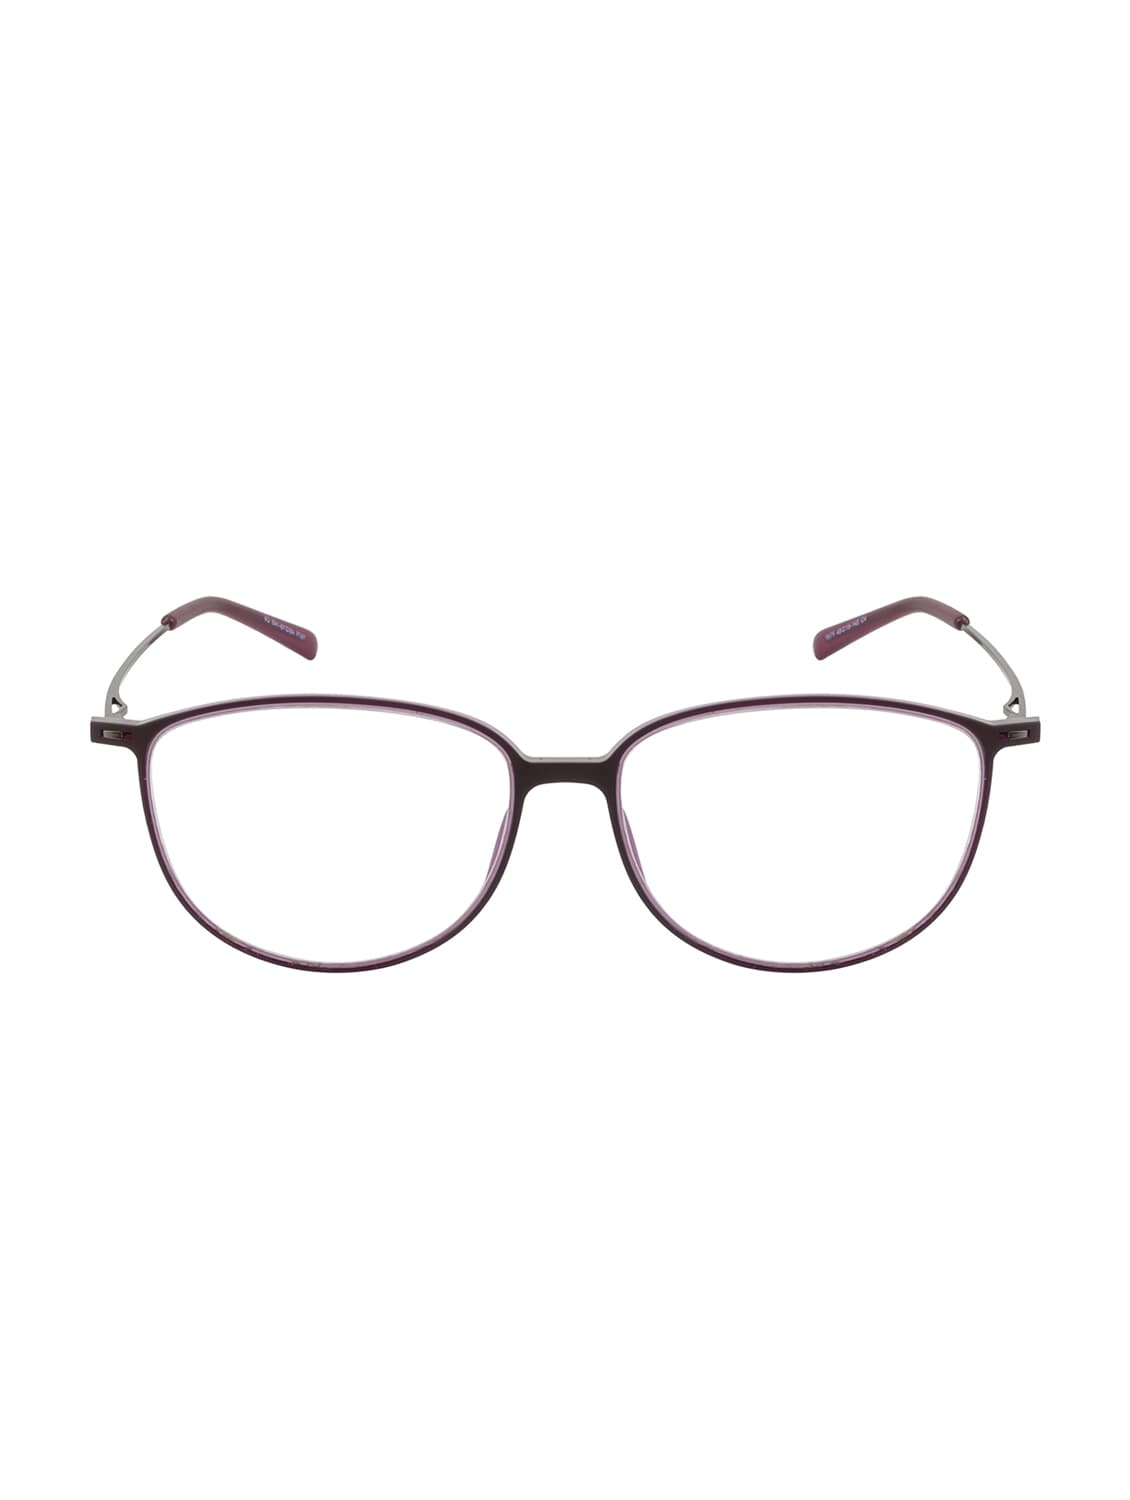 Buy Ted Smith Oval Frames by Ted Smith - Online shopping for Men ...